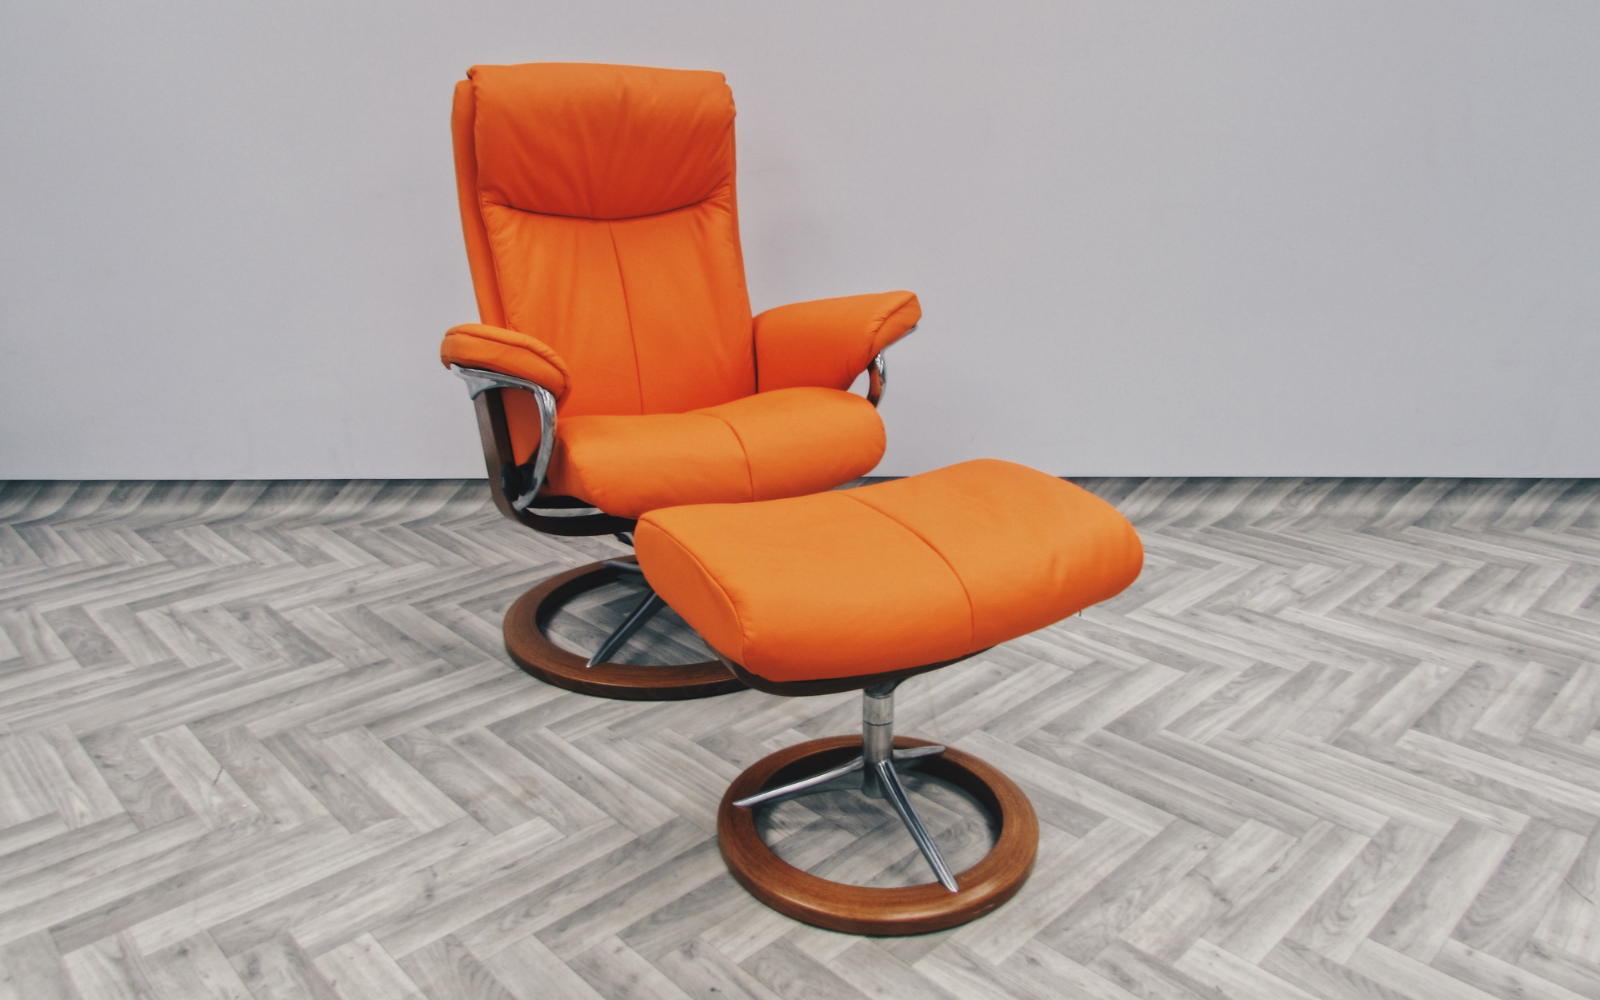 Bright Orange leather chair and accompanying footstool